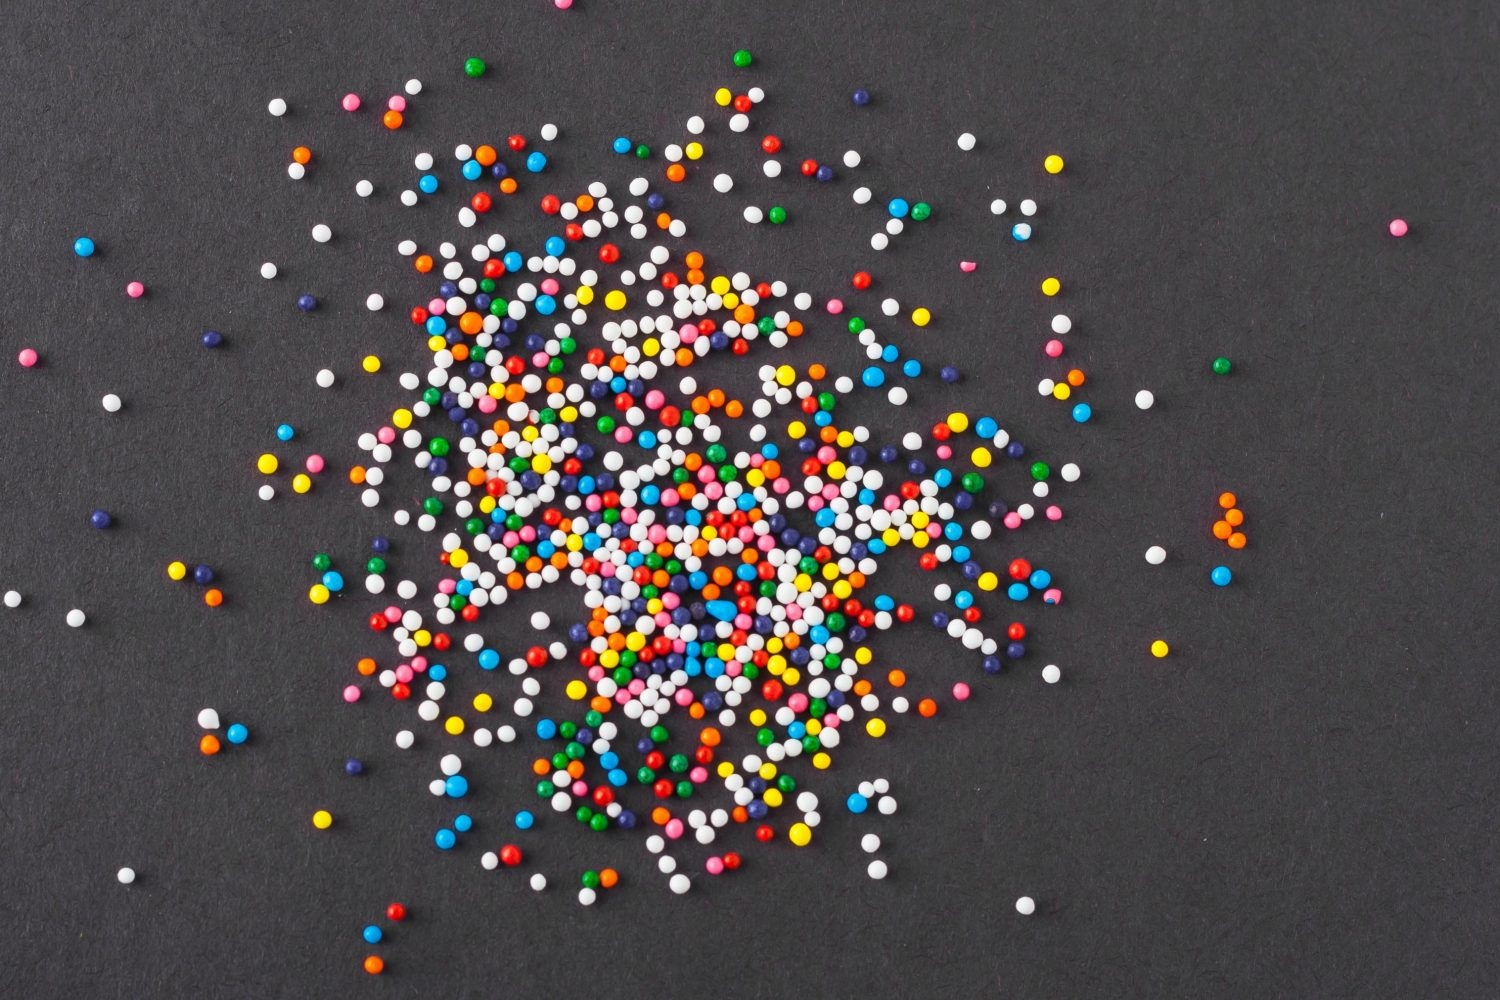 marbles, dots